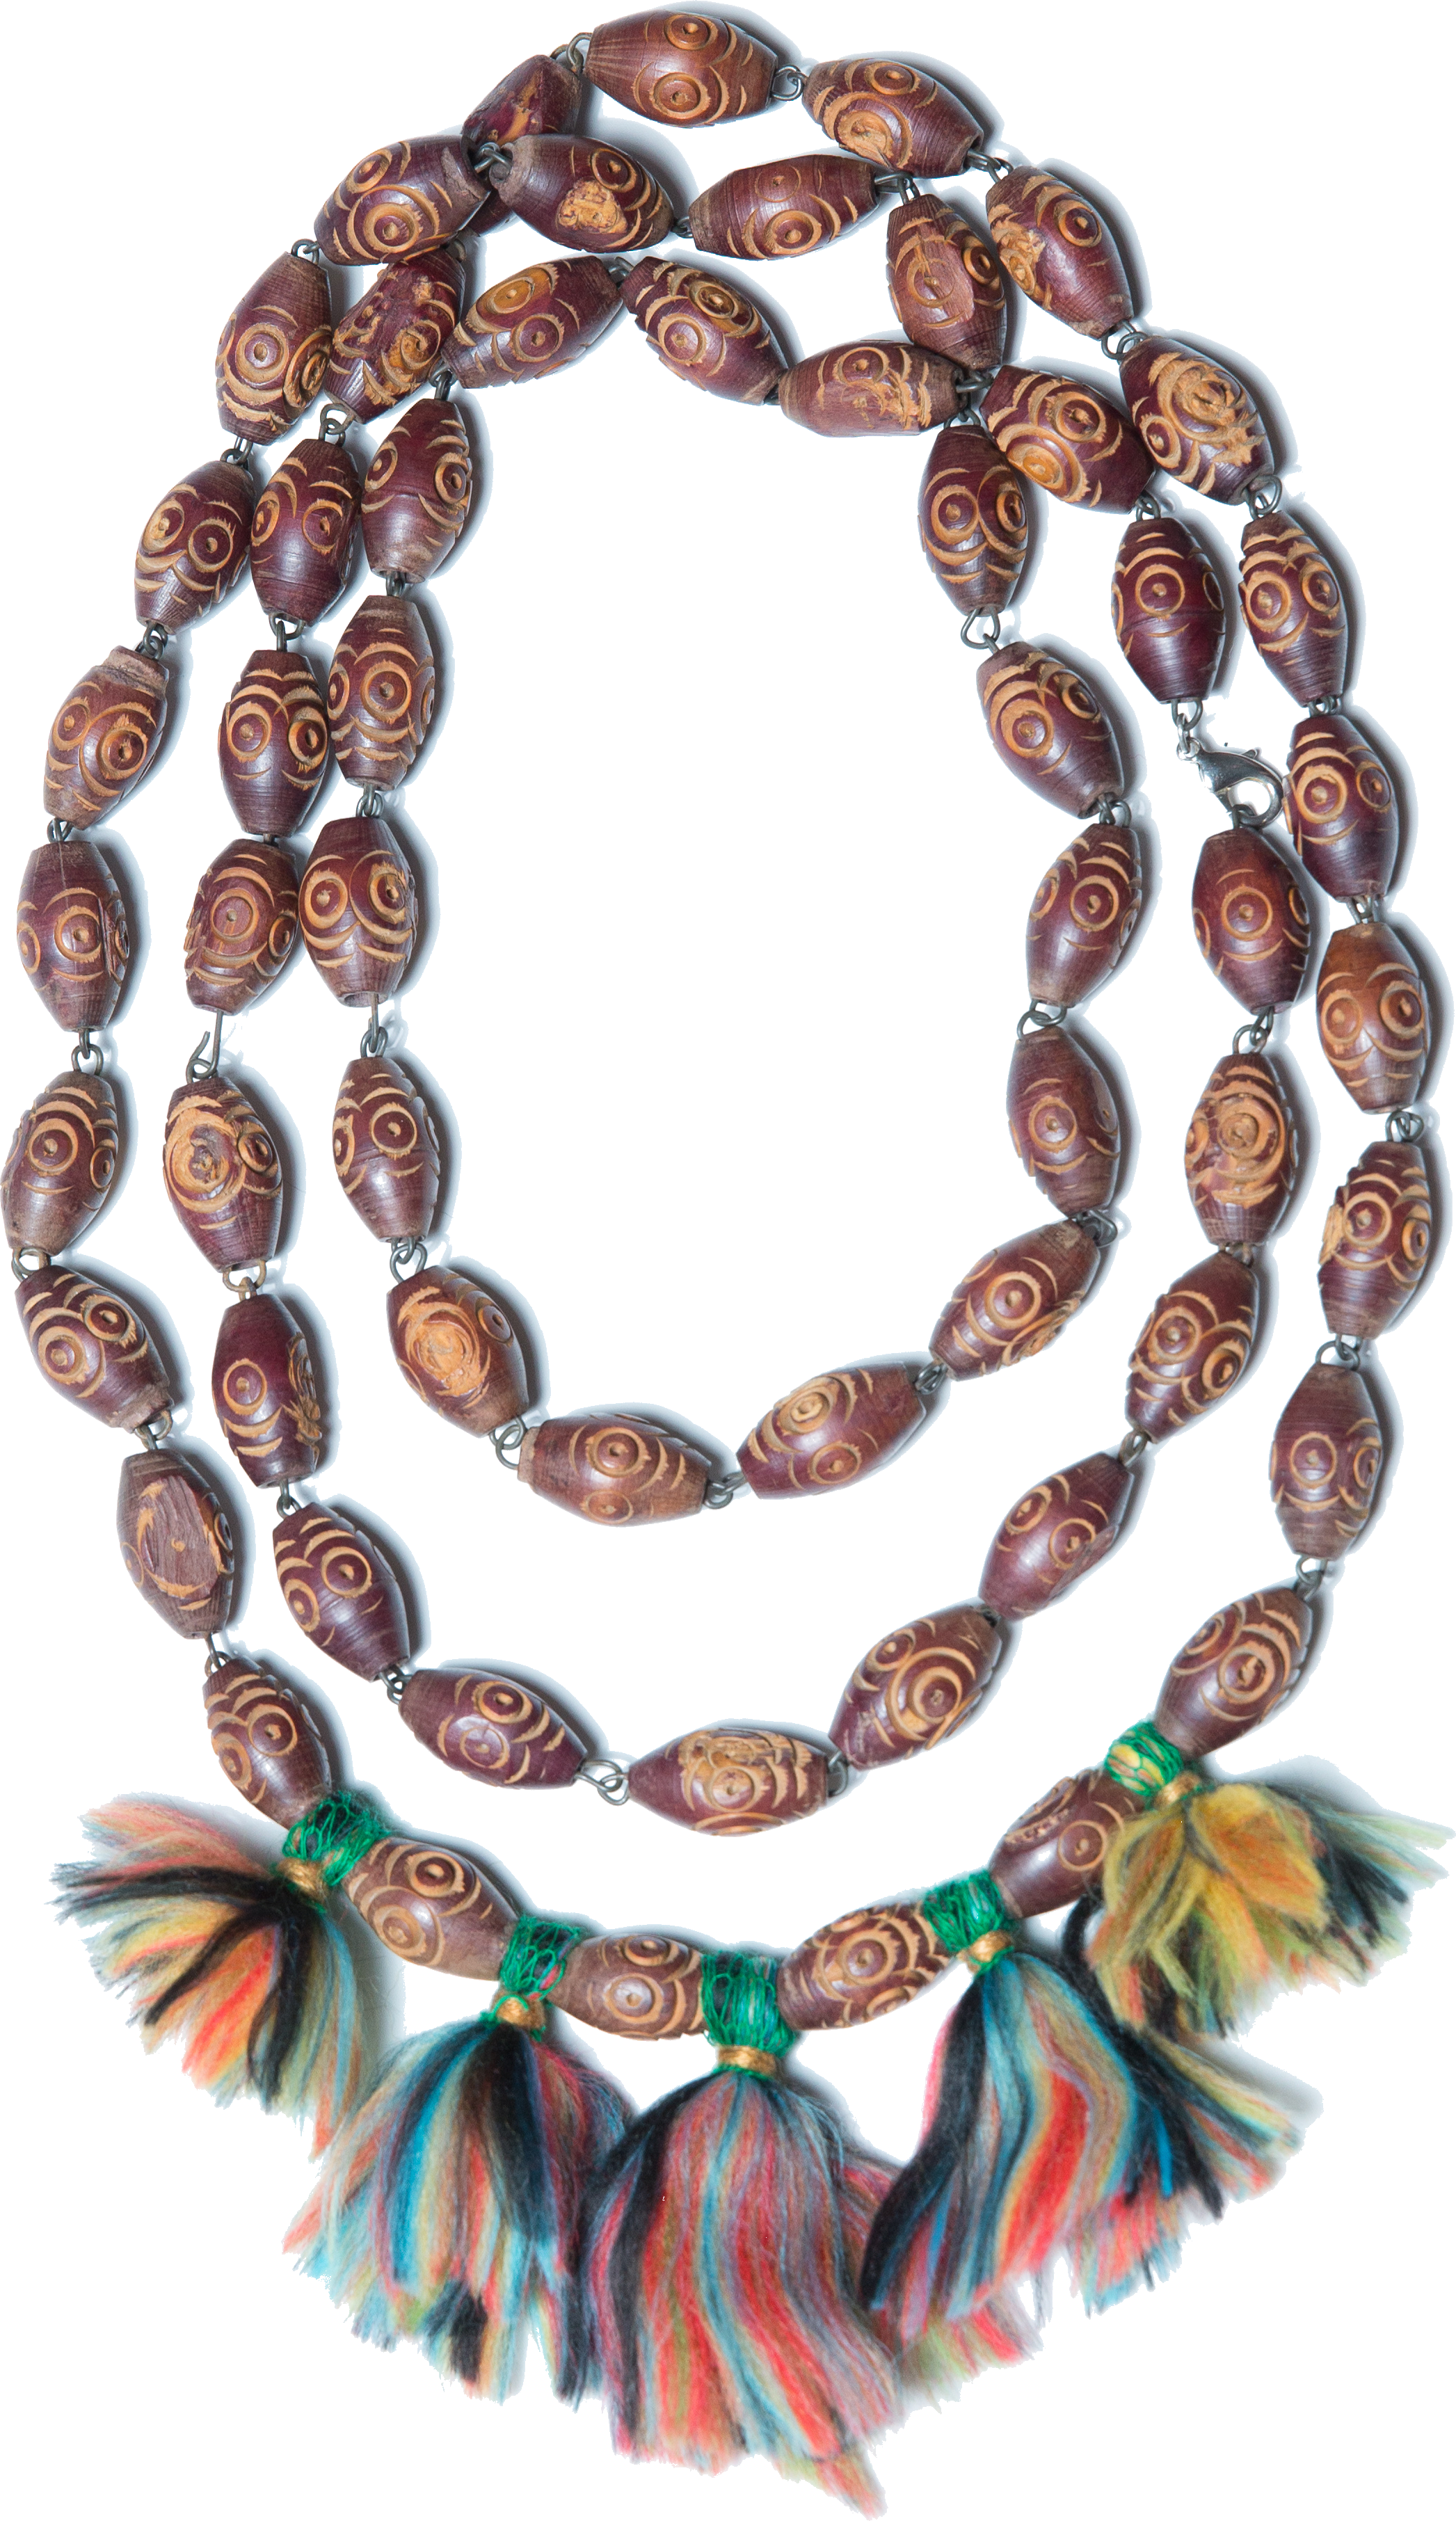 A collection of jewelry inspired by time spent abroad in Provence, France, these pieces utilize a combination of hand wrapping, knotting, and knitting techniques.  materials : reclaimed wooden + brass beads, leather, yarn, multicolored wool roving